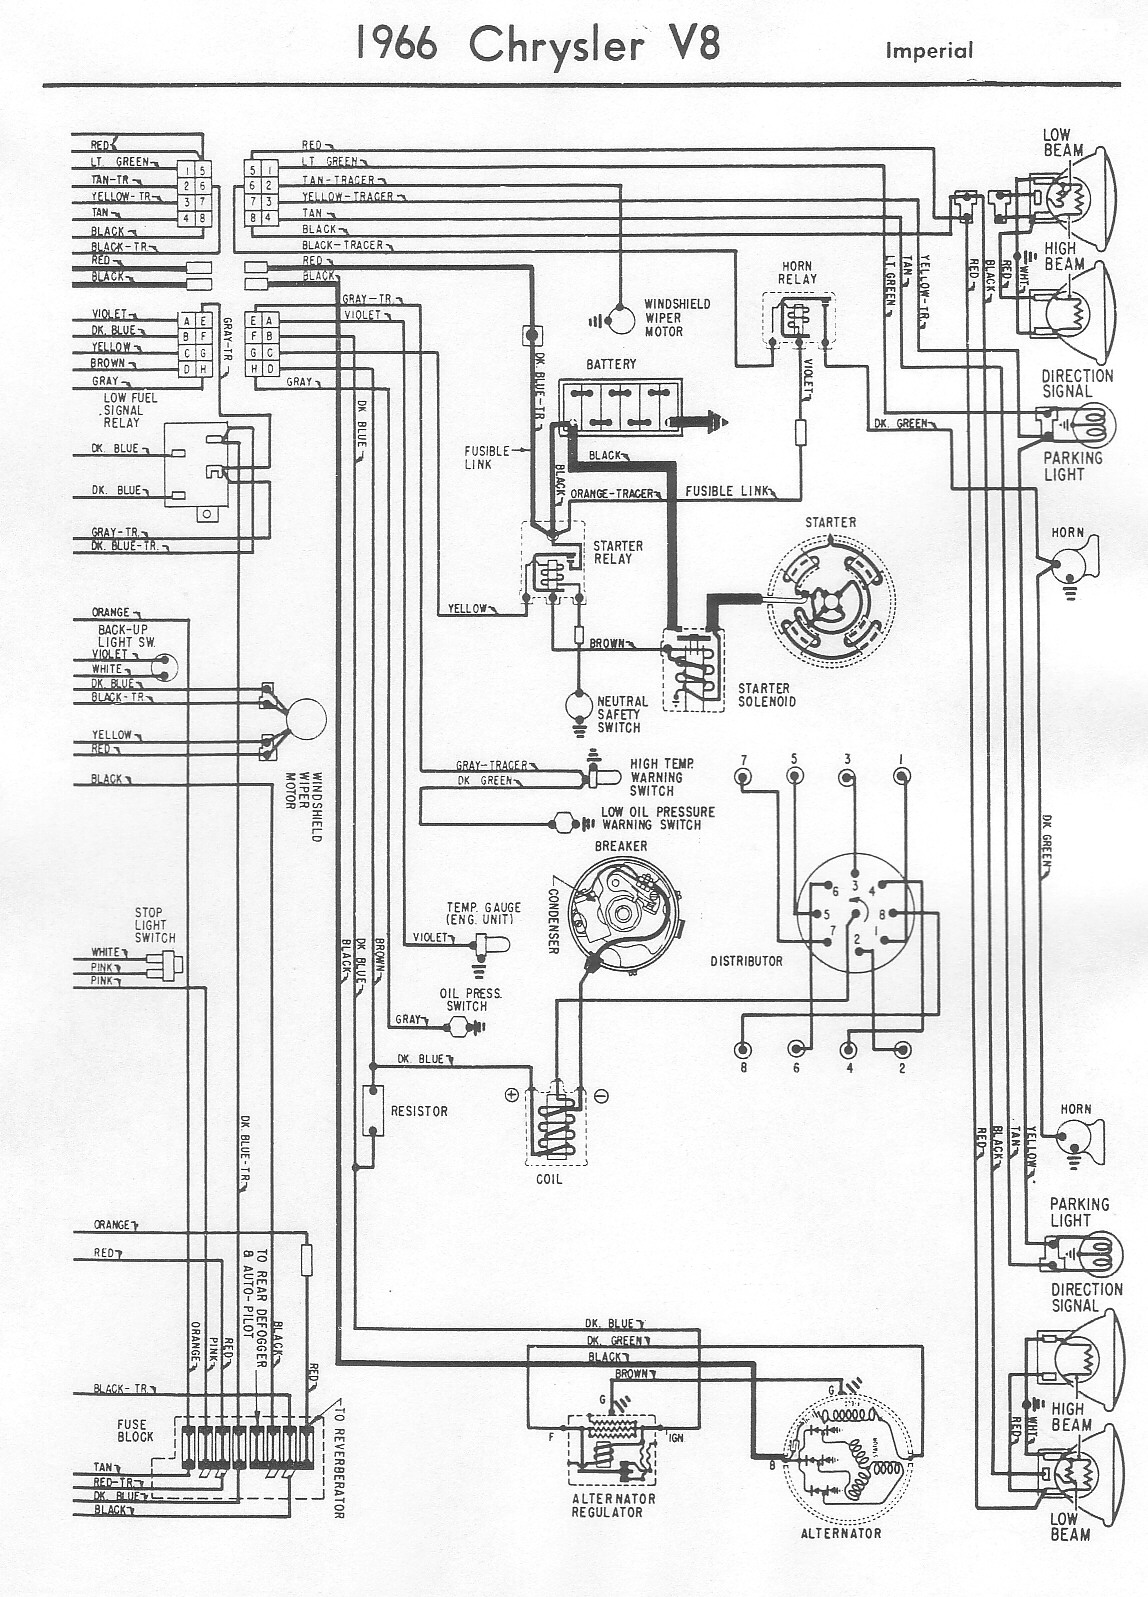 turn signal wiring diagram 1970 duster house wiring diagram symbols u2022  rh maxturner co 1972 Plymouth Duster 1973 Plymouth Duster